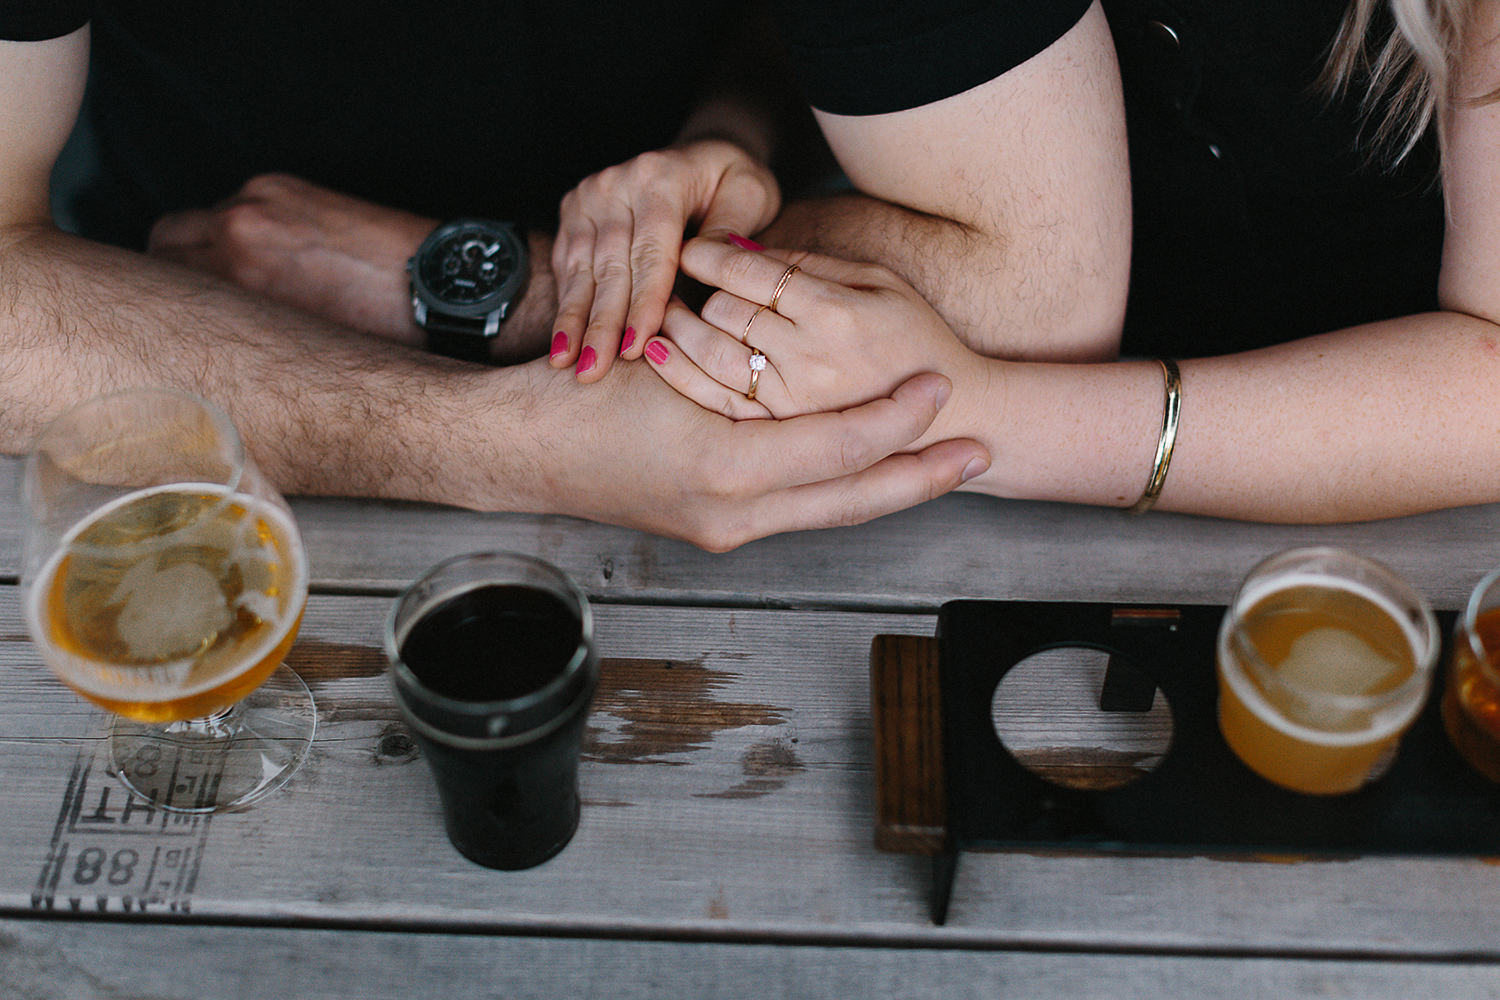 downtown-toronto-in-home-engagement-session-toronto-wedding-photographer-ryanne-hollies-photography-documentary-candid-natural-photos-engaged-in-toronto-brewery-engagement-photos-fun-enjoyable-unique-couple-details-engagement-ring.jpg